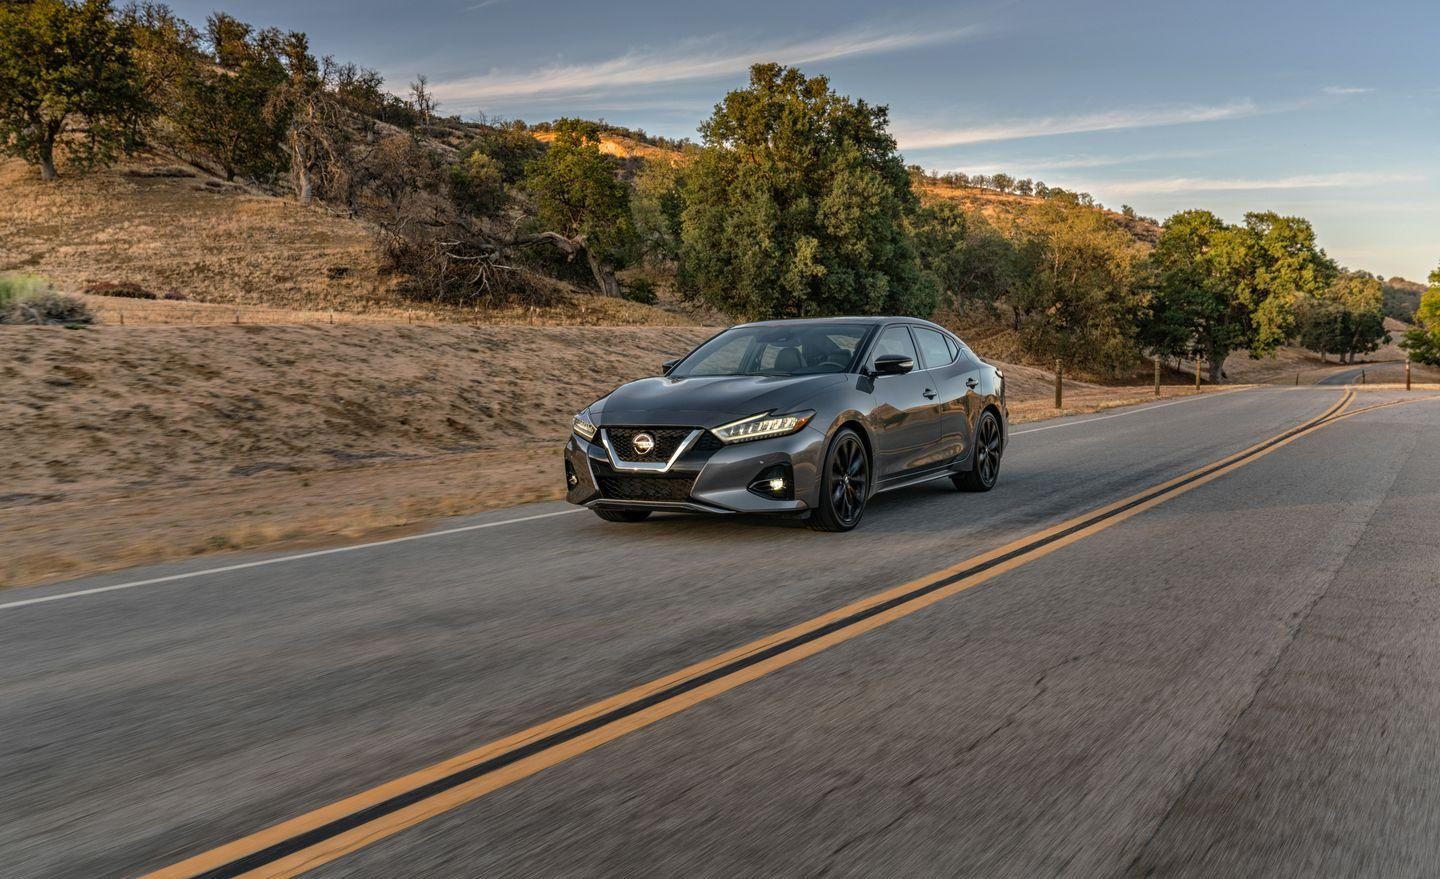 The New and Improved 2019 Nissan Maxima in Photos